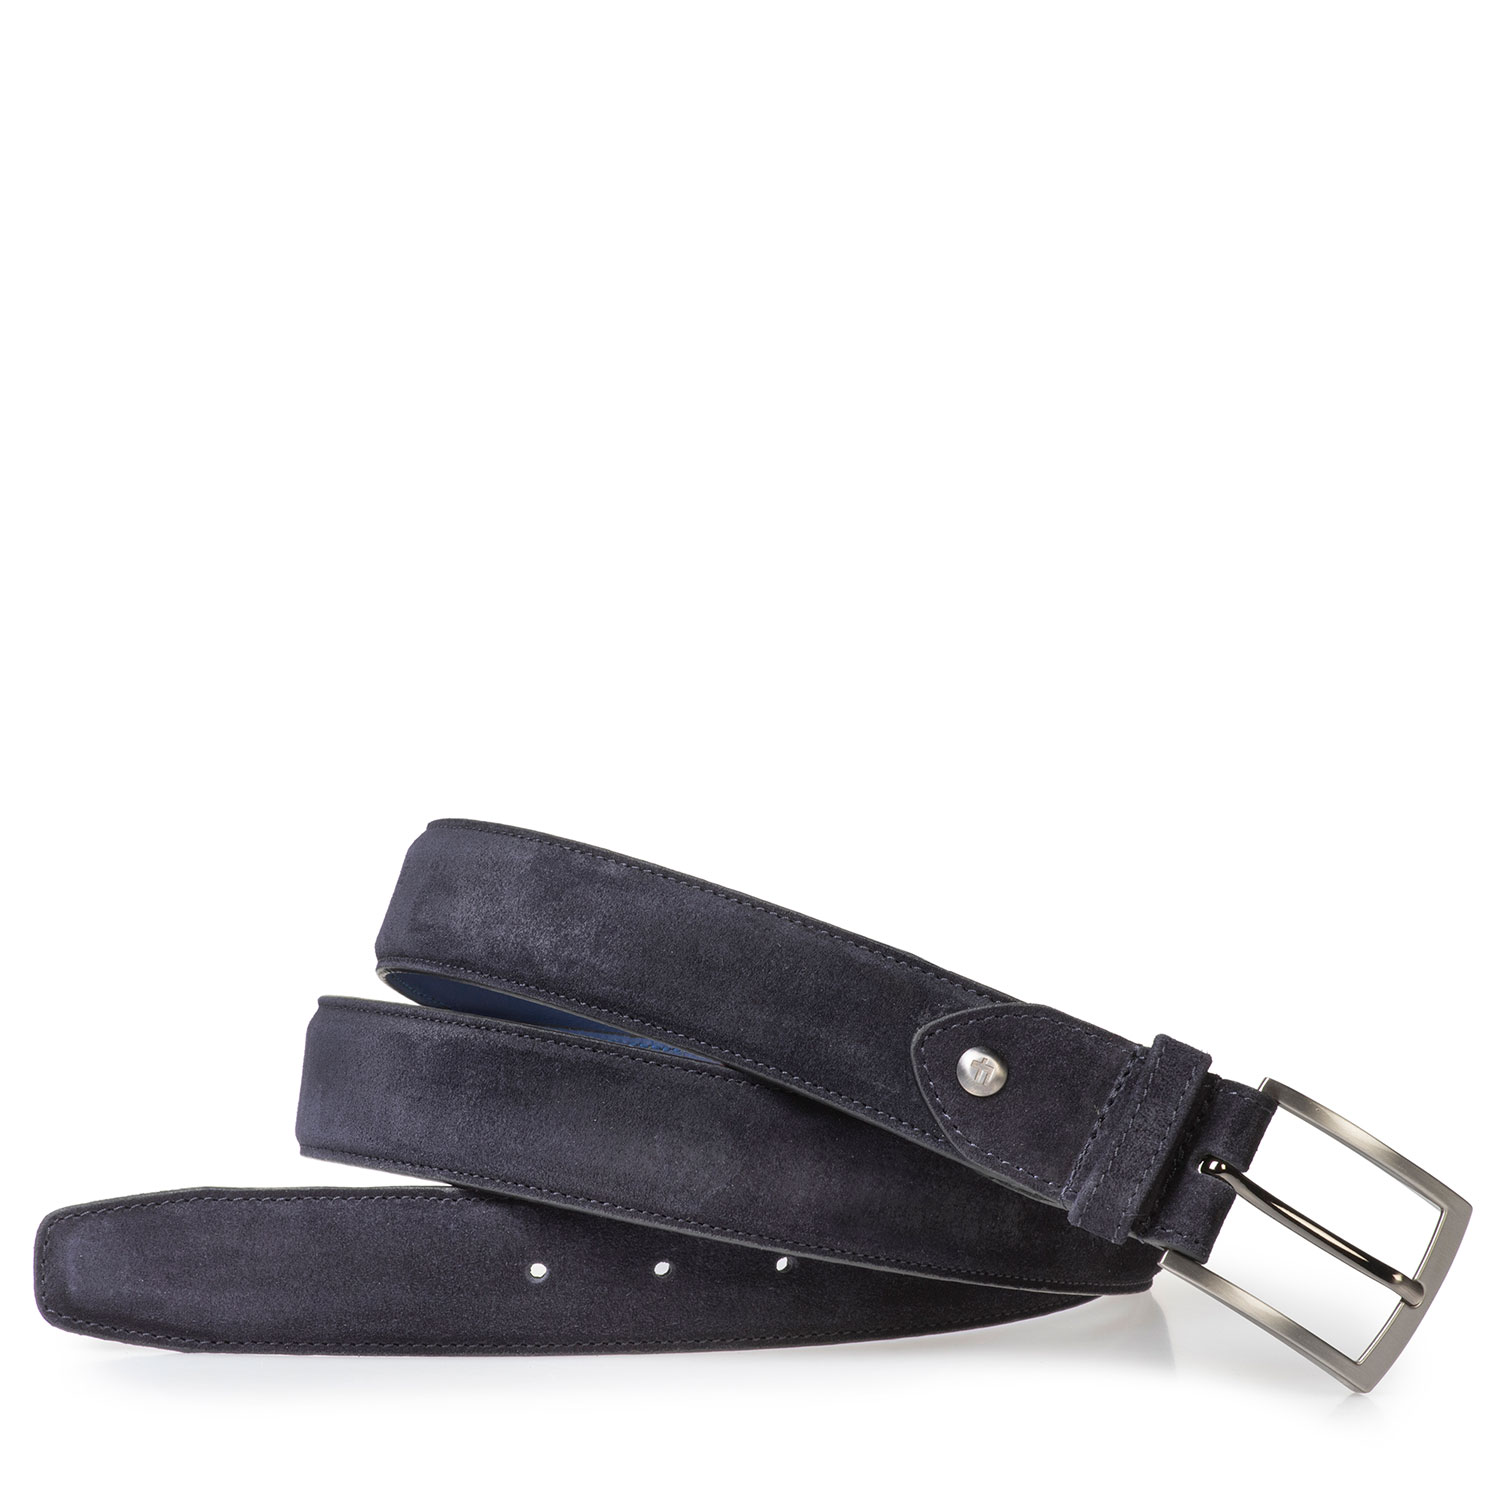 75201/74 - Dark blue suede leather belt with print